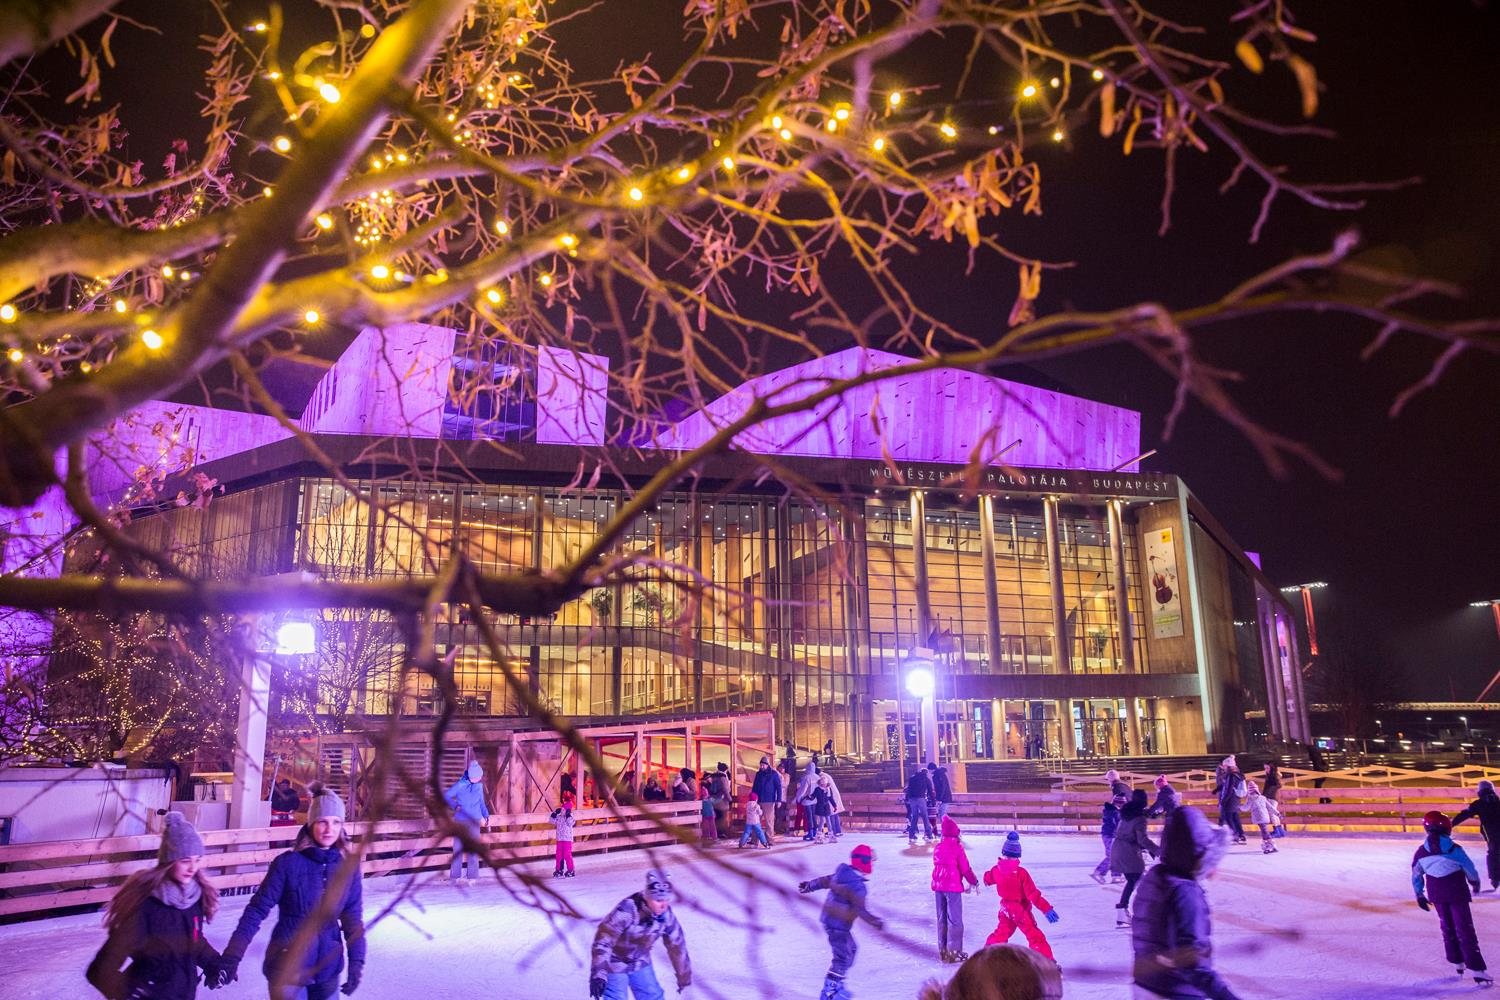 people skating on neon light lit outdoor ice rink